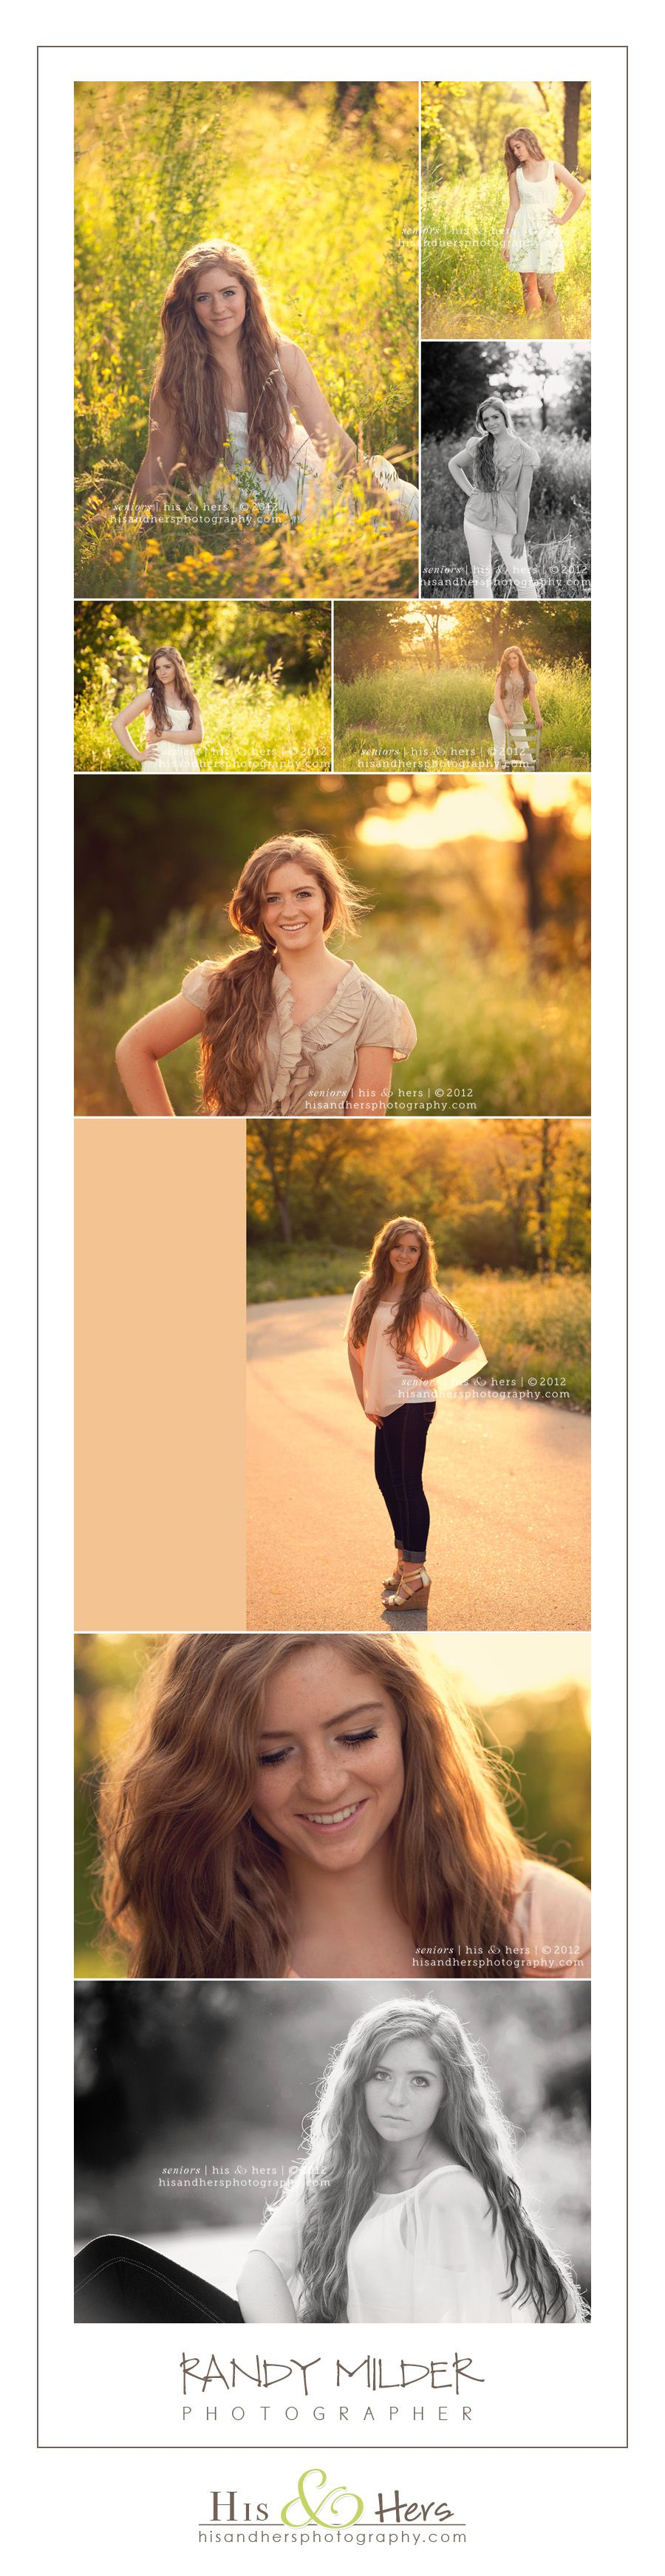 iowa high school senior portraits, des moines, iowa, senior pictures photographer, randy milder